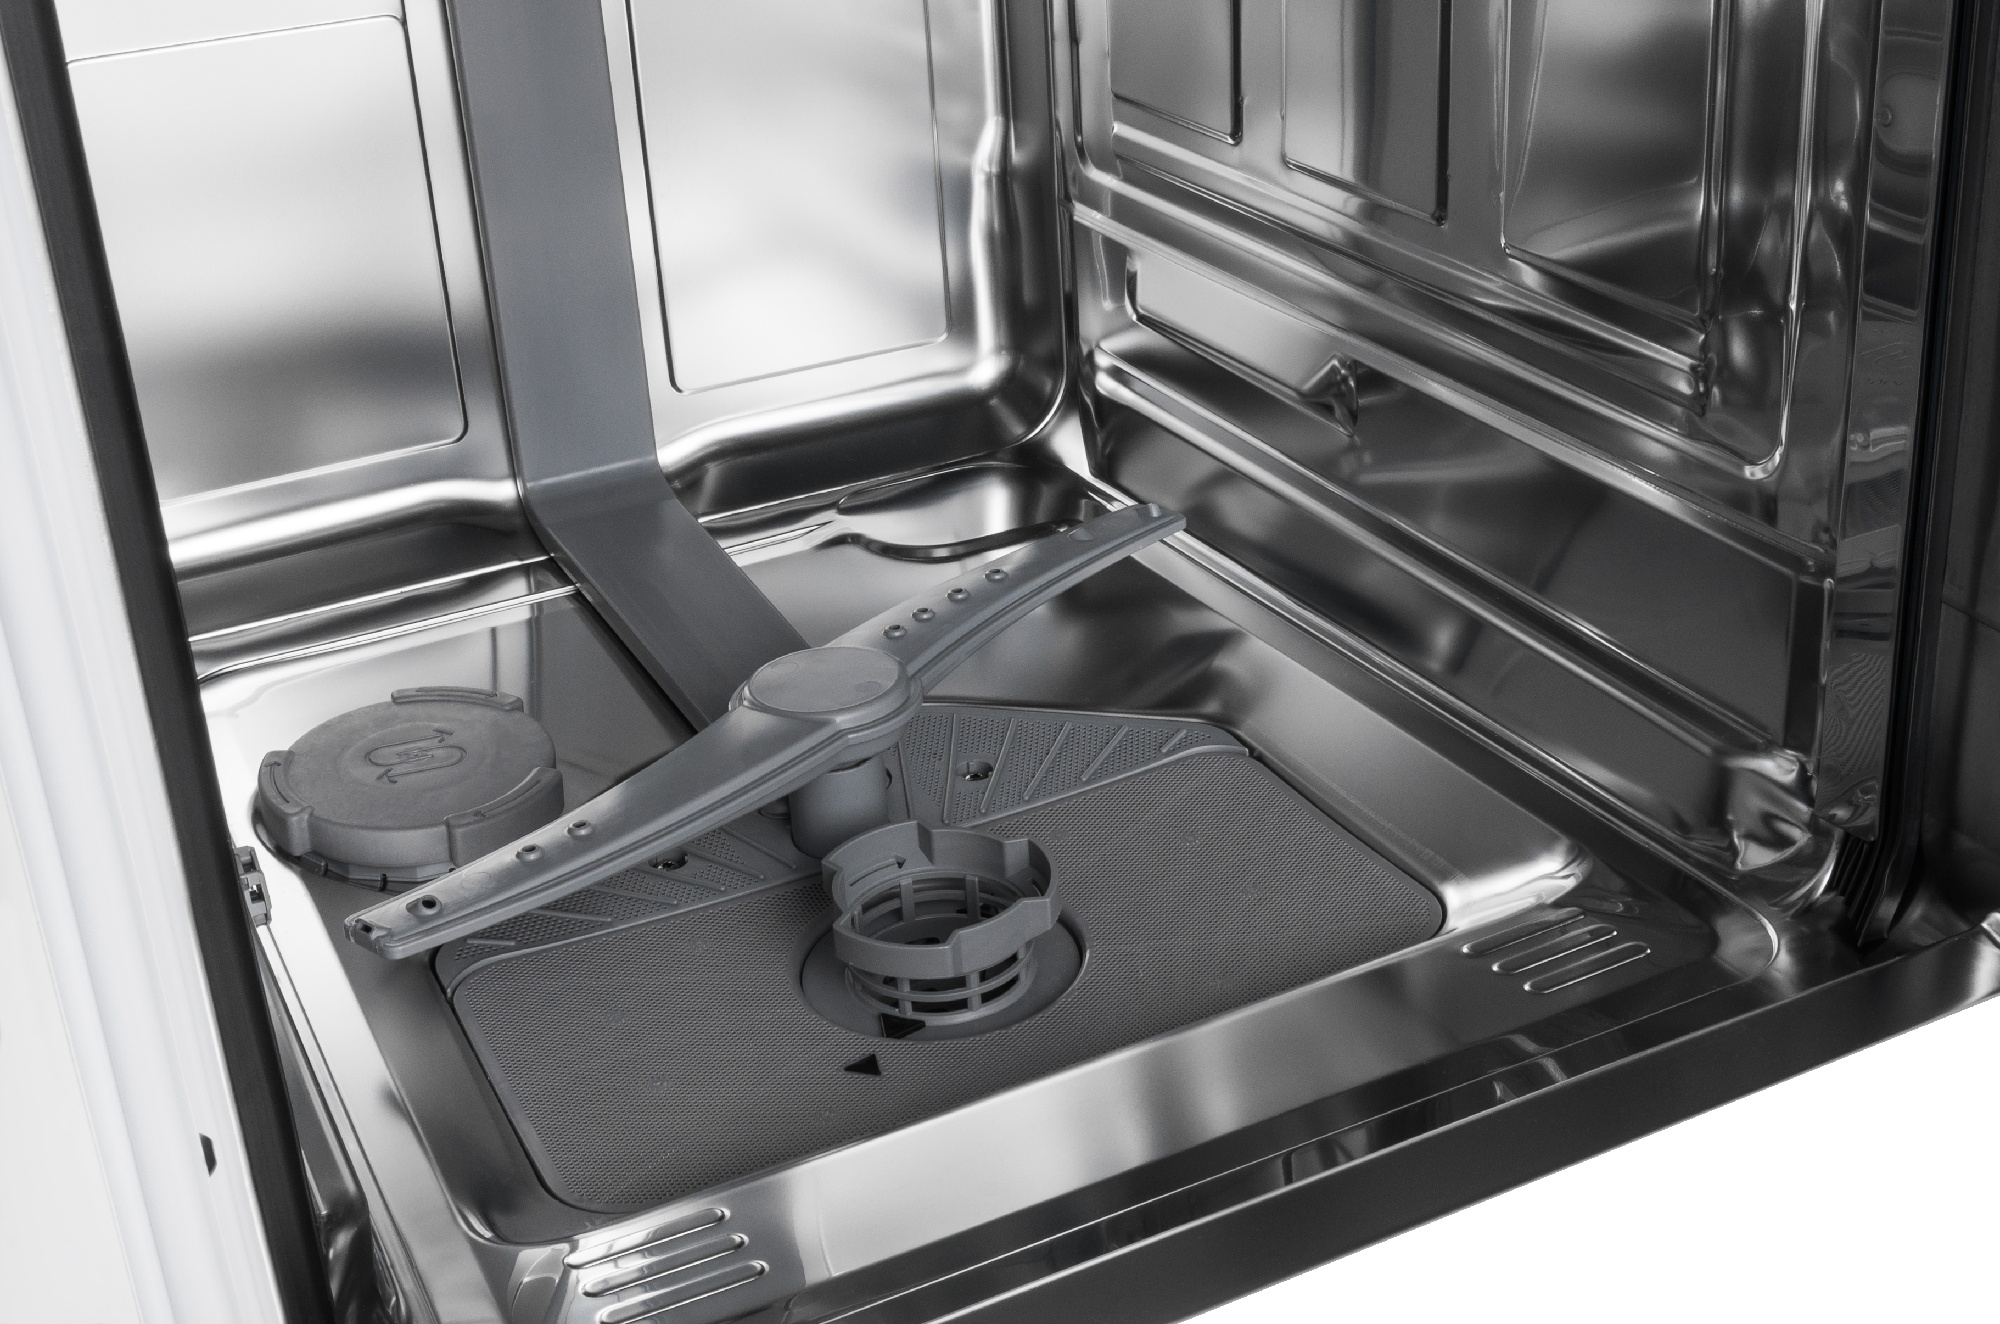 cleaning dishwasher spray arms